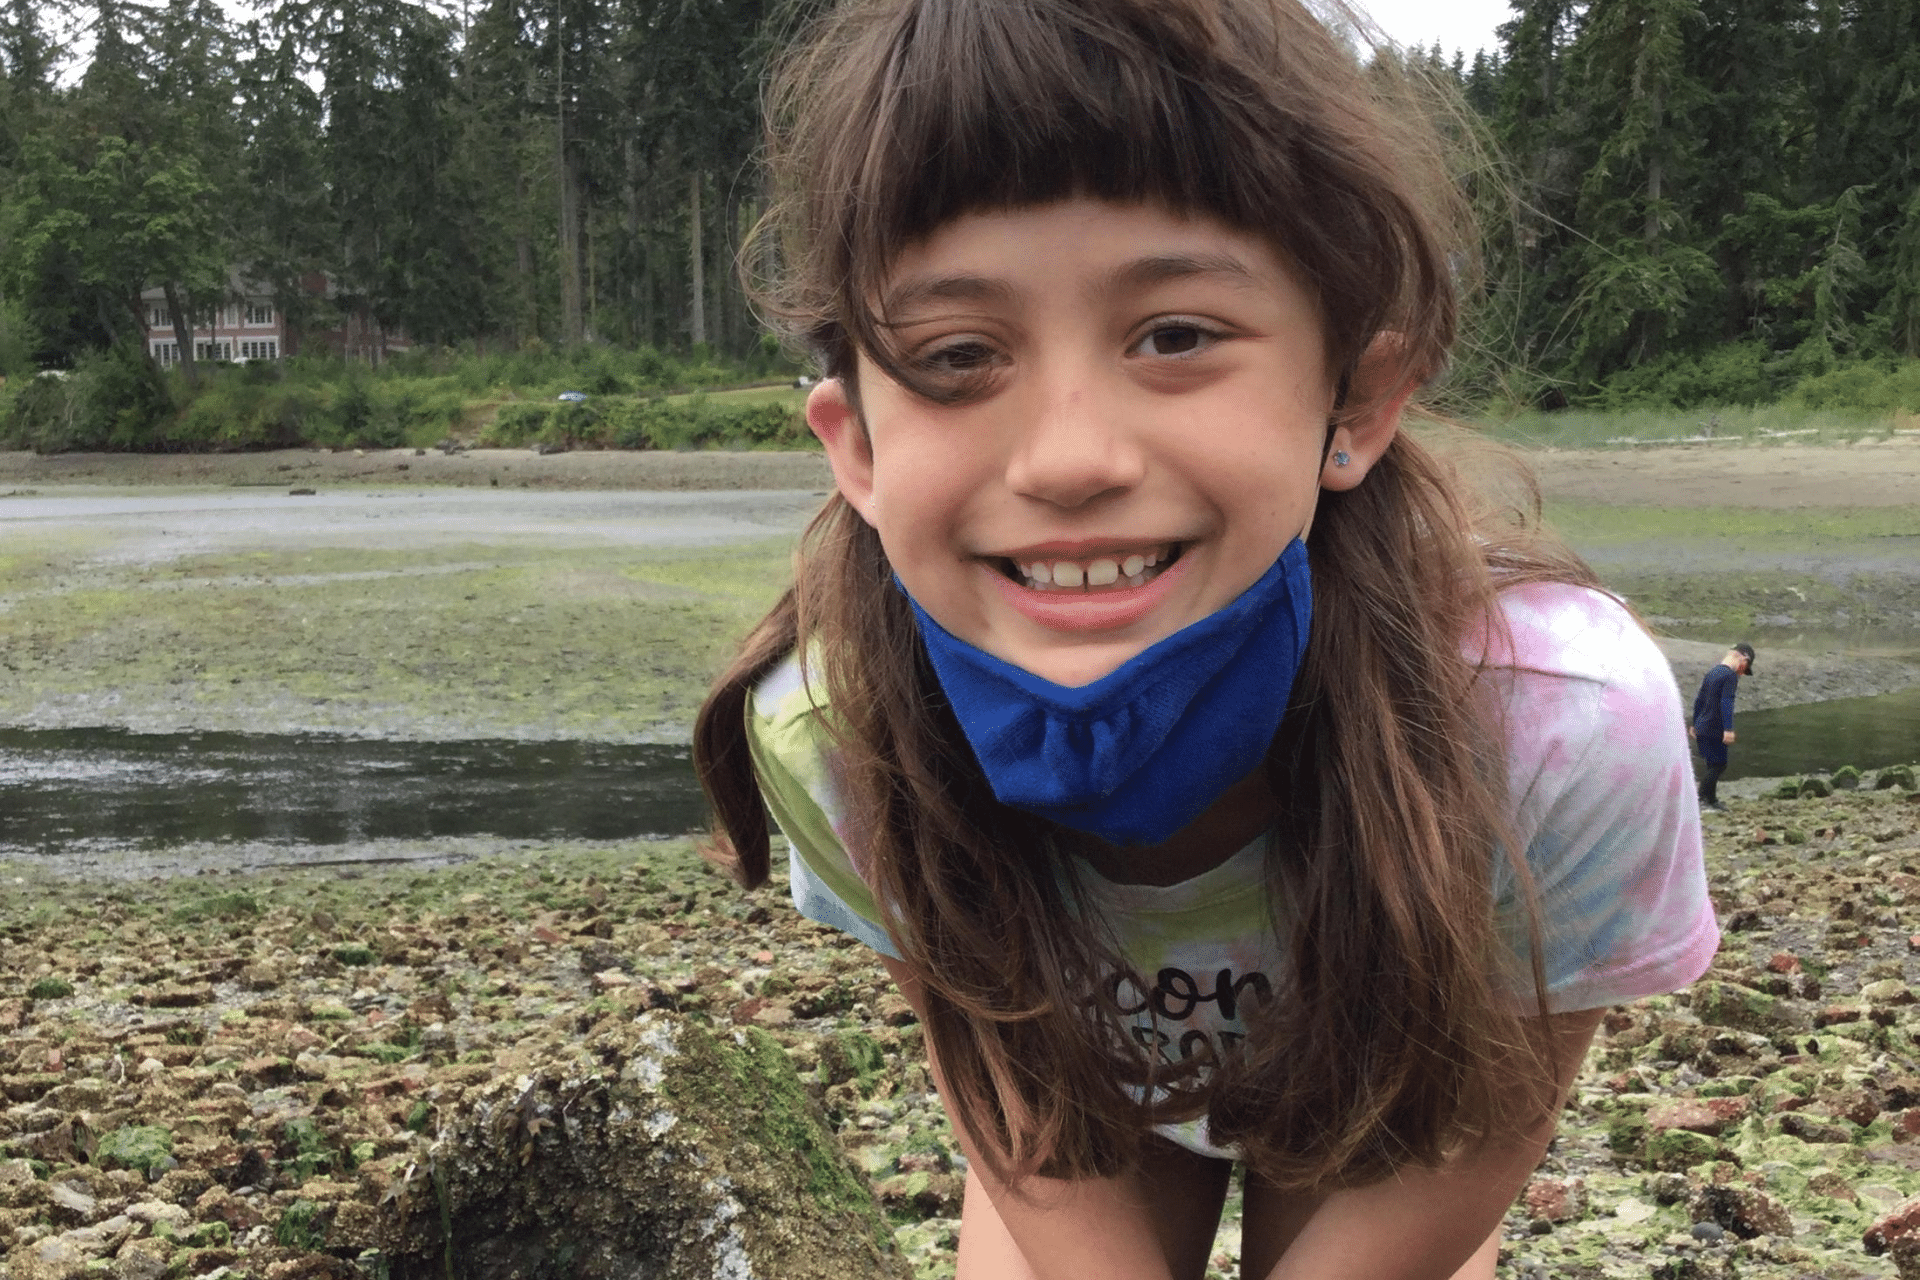 A child smiles while at Blakely Harbor on Bainbridge Island during an IslandWood summer camp. They have pulled their mask down to their chin.